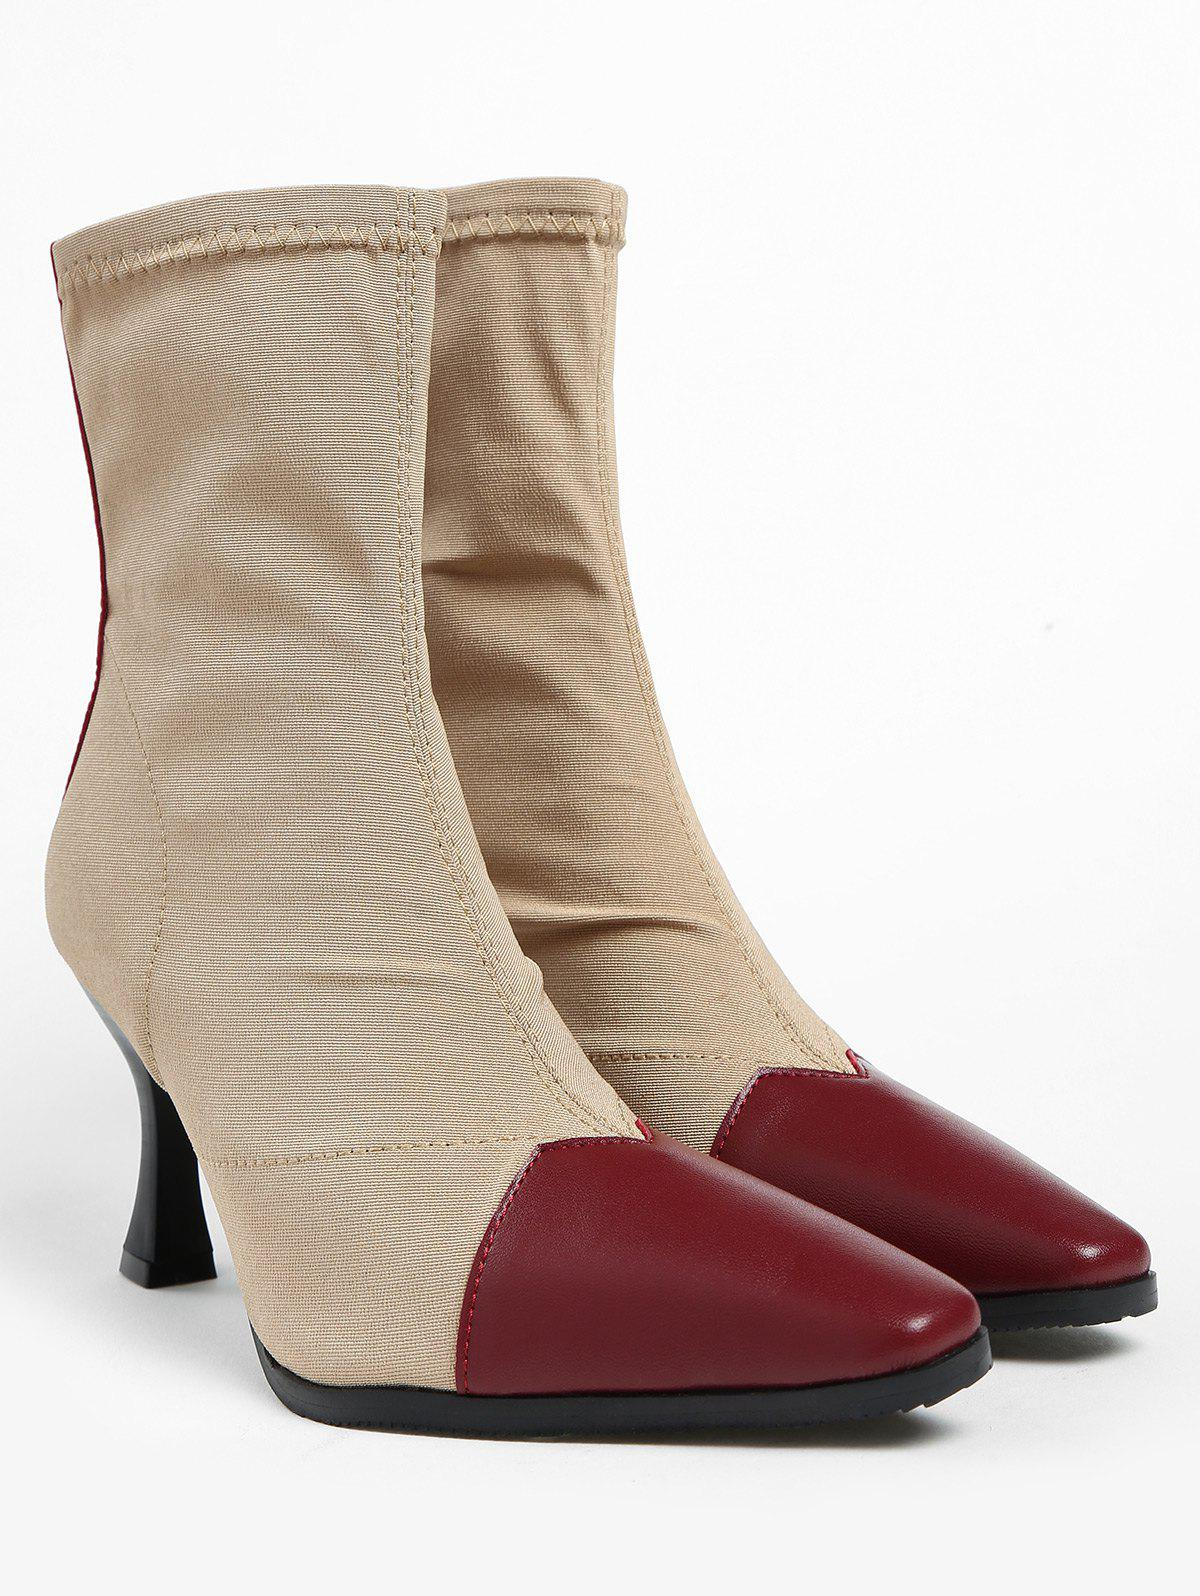 Pointed Toe Cap High Heel Ankle Boots - CHESTNUT RED 36